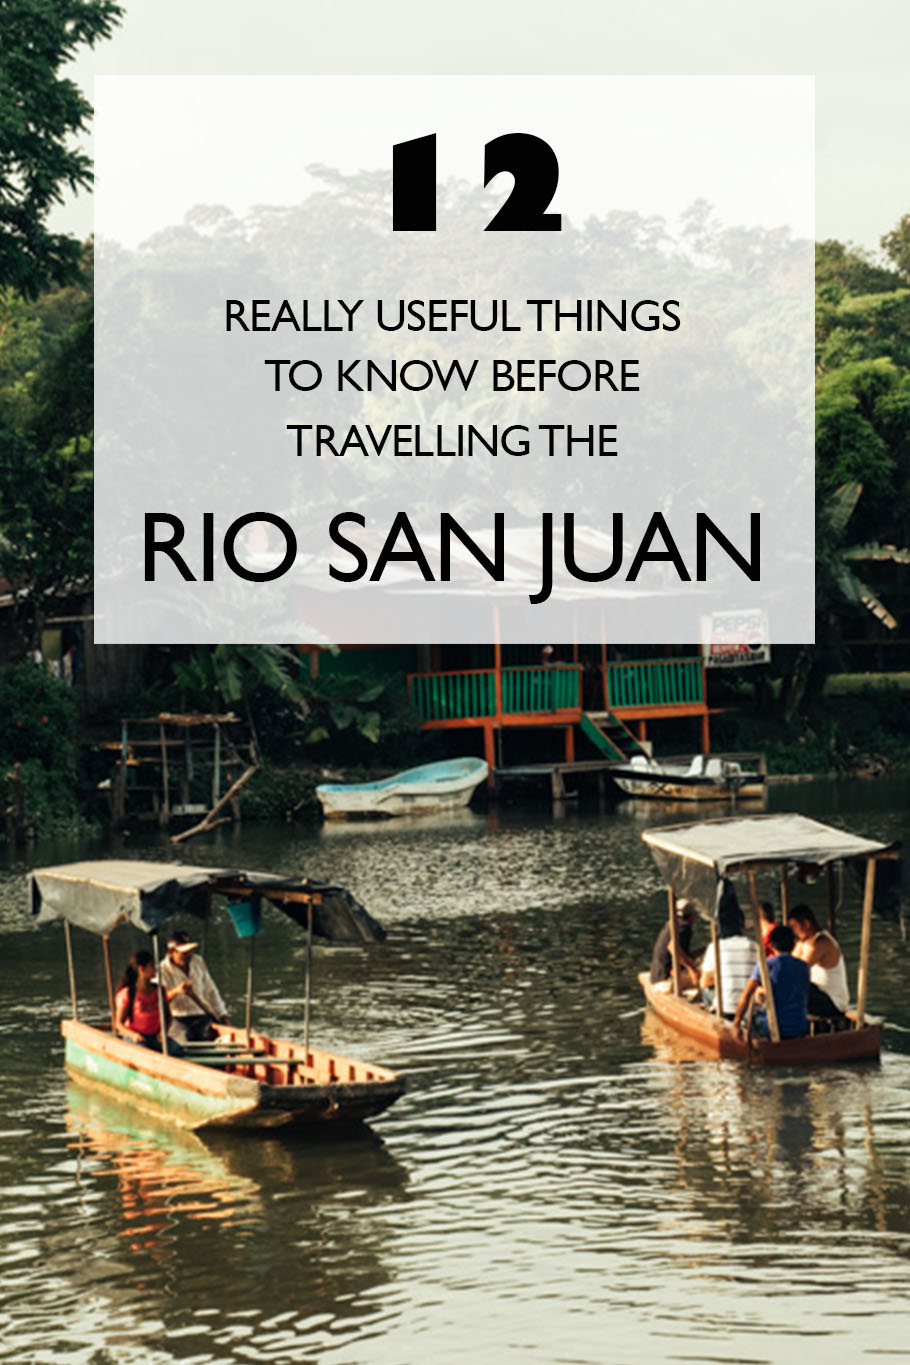 12 Really Useful Things To Know Before Travelling the Rio San Juan, Nicaragua